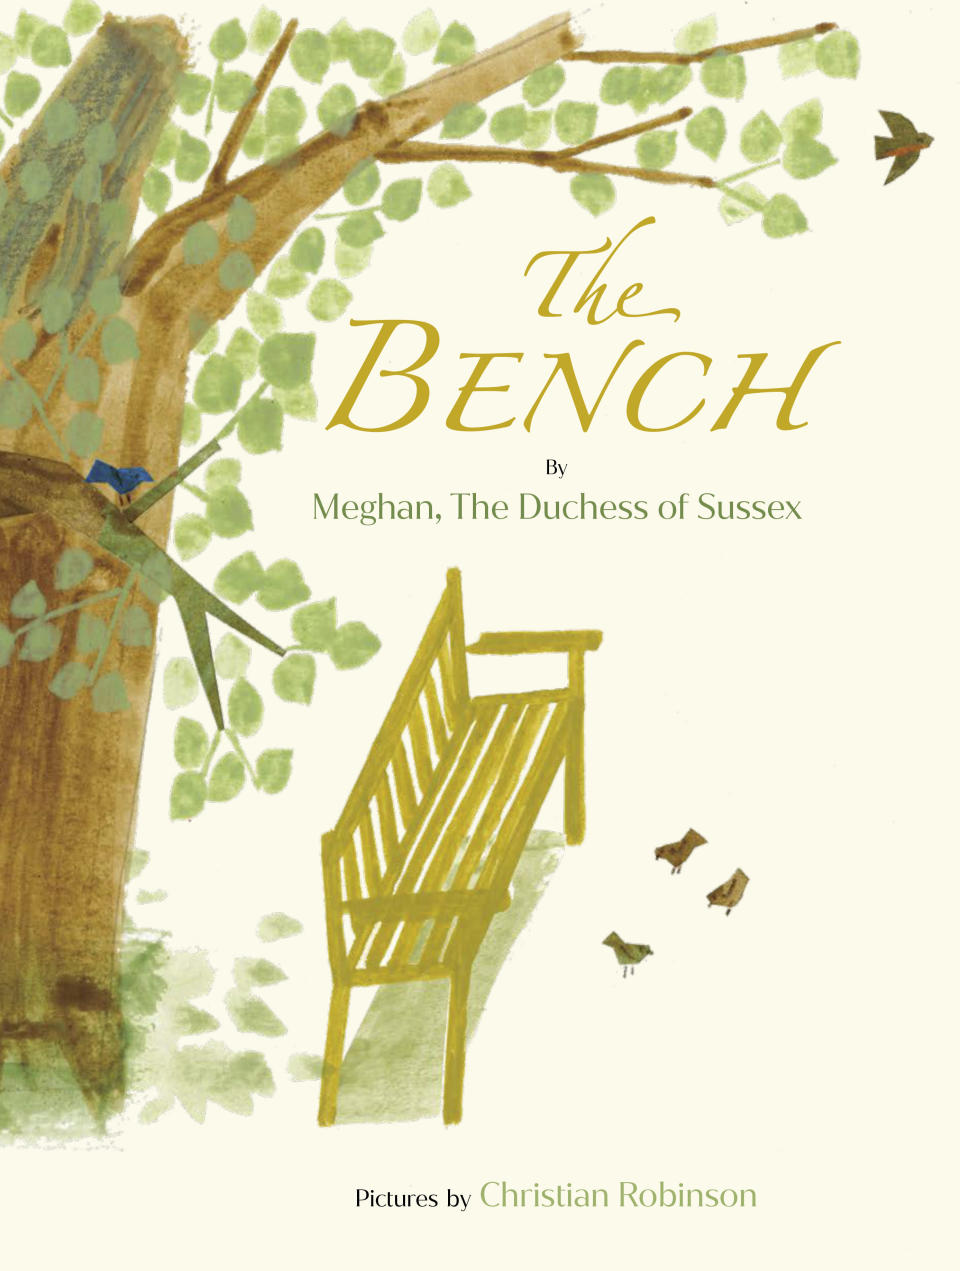 """This image released by Random House Children's Books shows """"The Bench,"""" a children's book by Meghan, The Duchess of Sussex, and with pictures by Christian Robinson. The book will publish on June 8. (Random House Children's Books via AP)"""